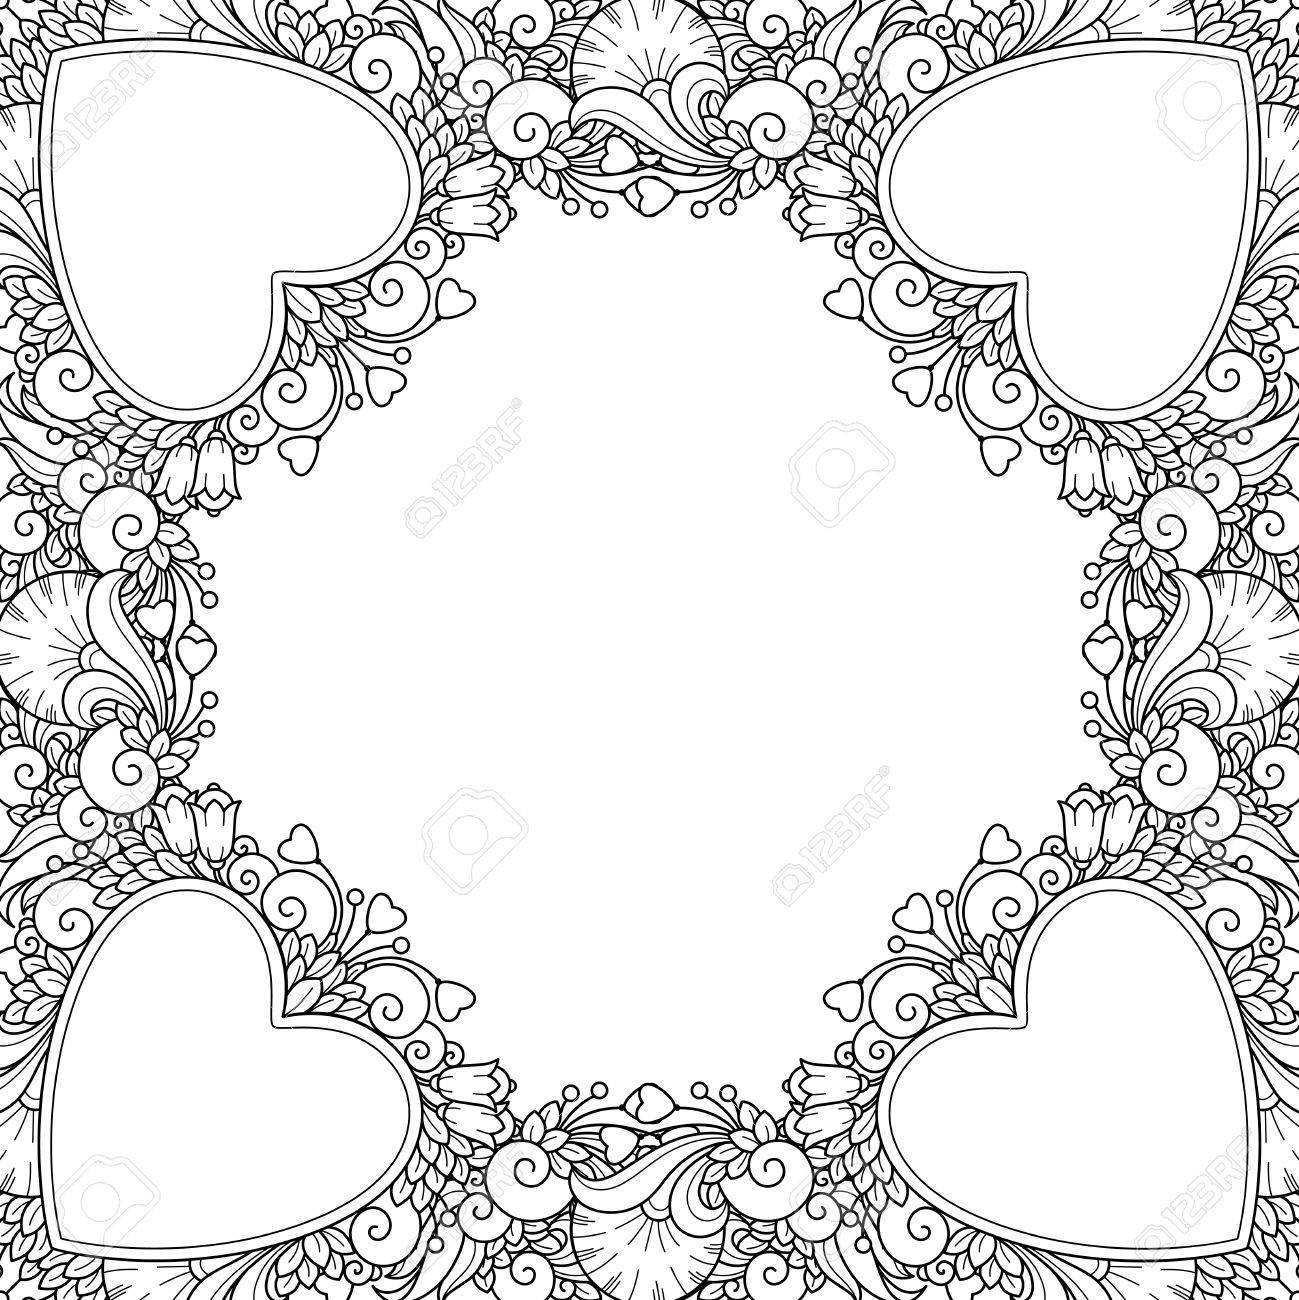 Zentangle Coloring Book Page Decorative Love Frame With Hearts Flowers Ornate Elements In Doodle Style Floral